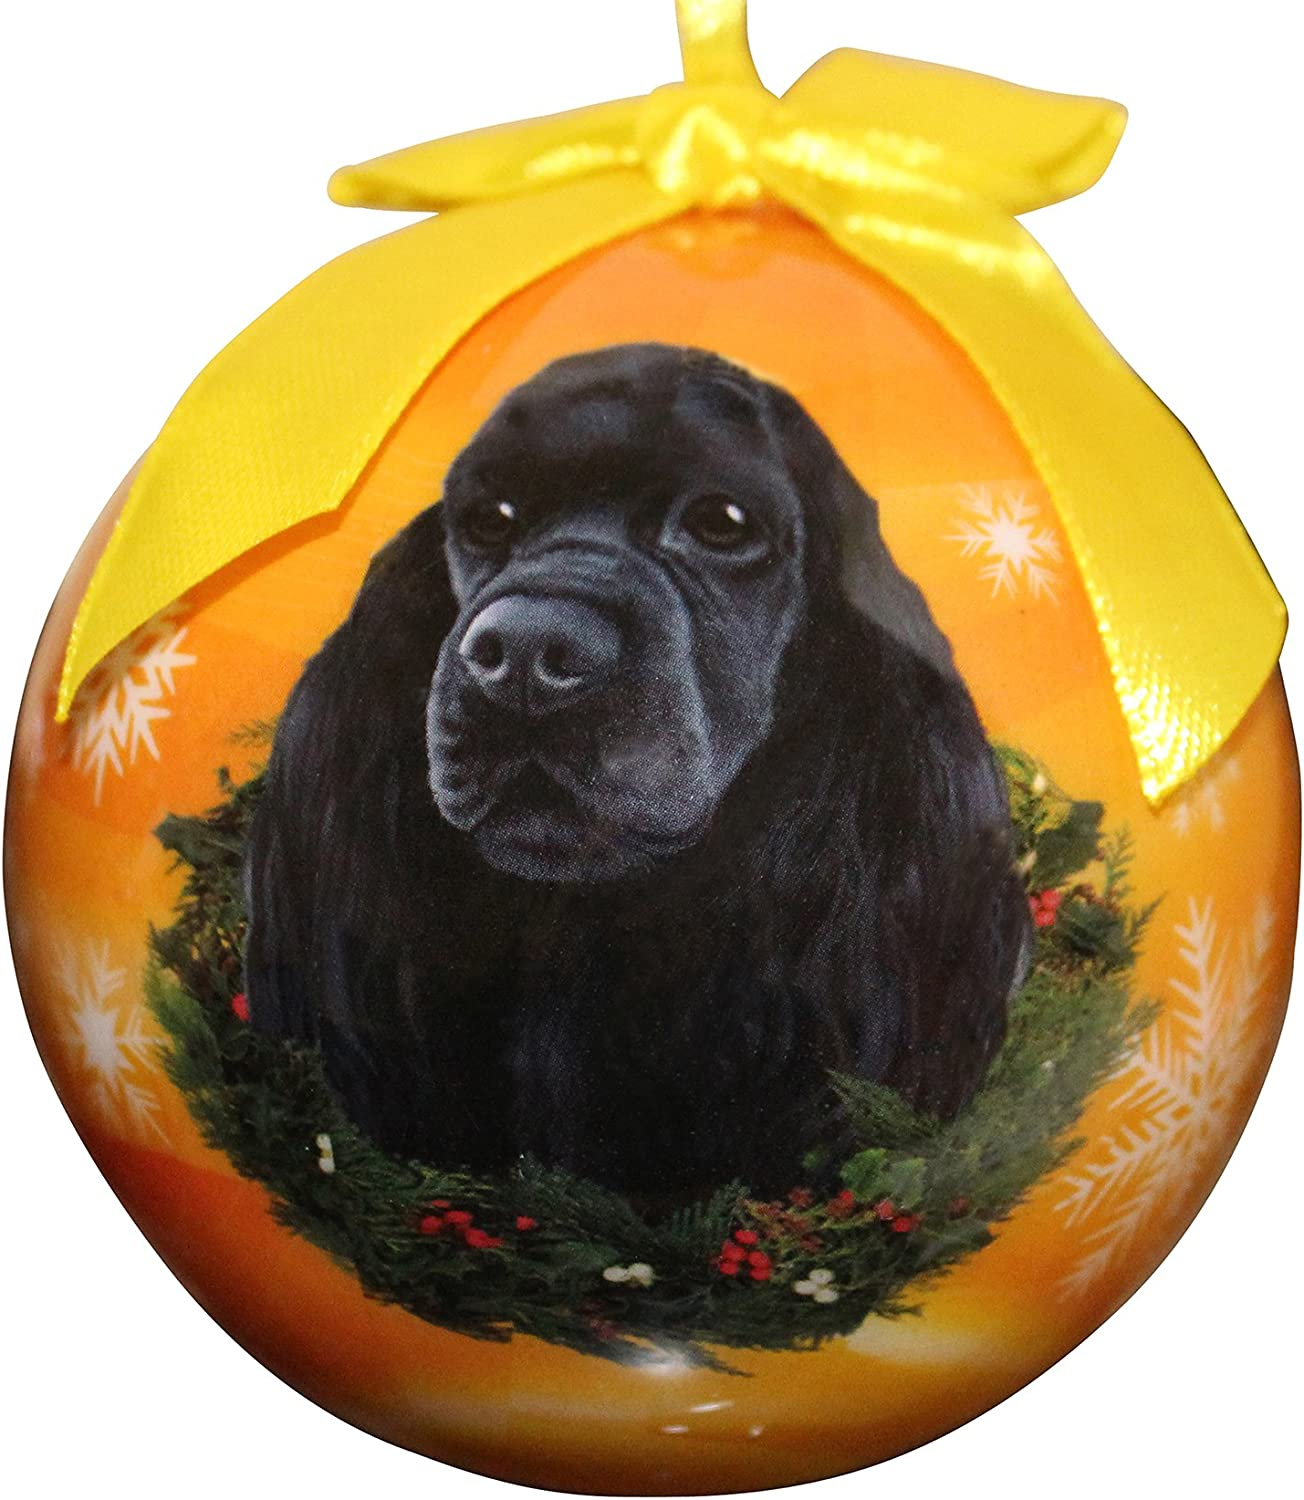 Cocker Spaniel Christmas Ornament Shatter Proof Ball Easy To Personalize A Perfect Gift For Cocker Spaniel Lovers